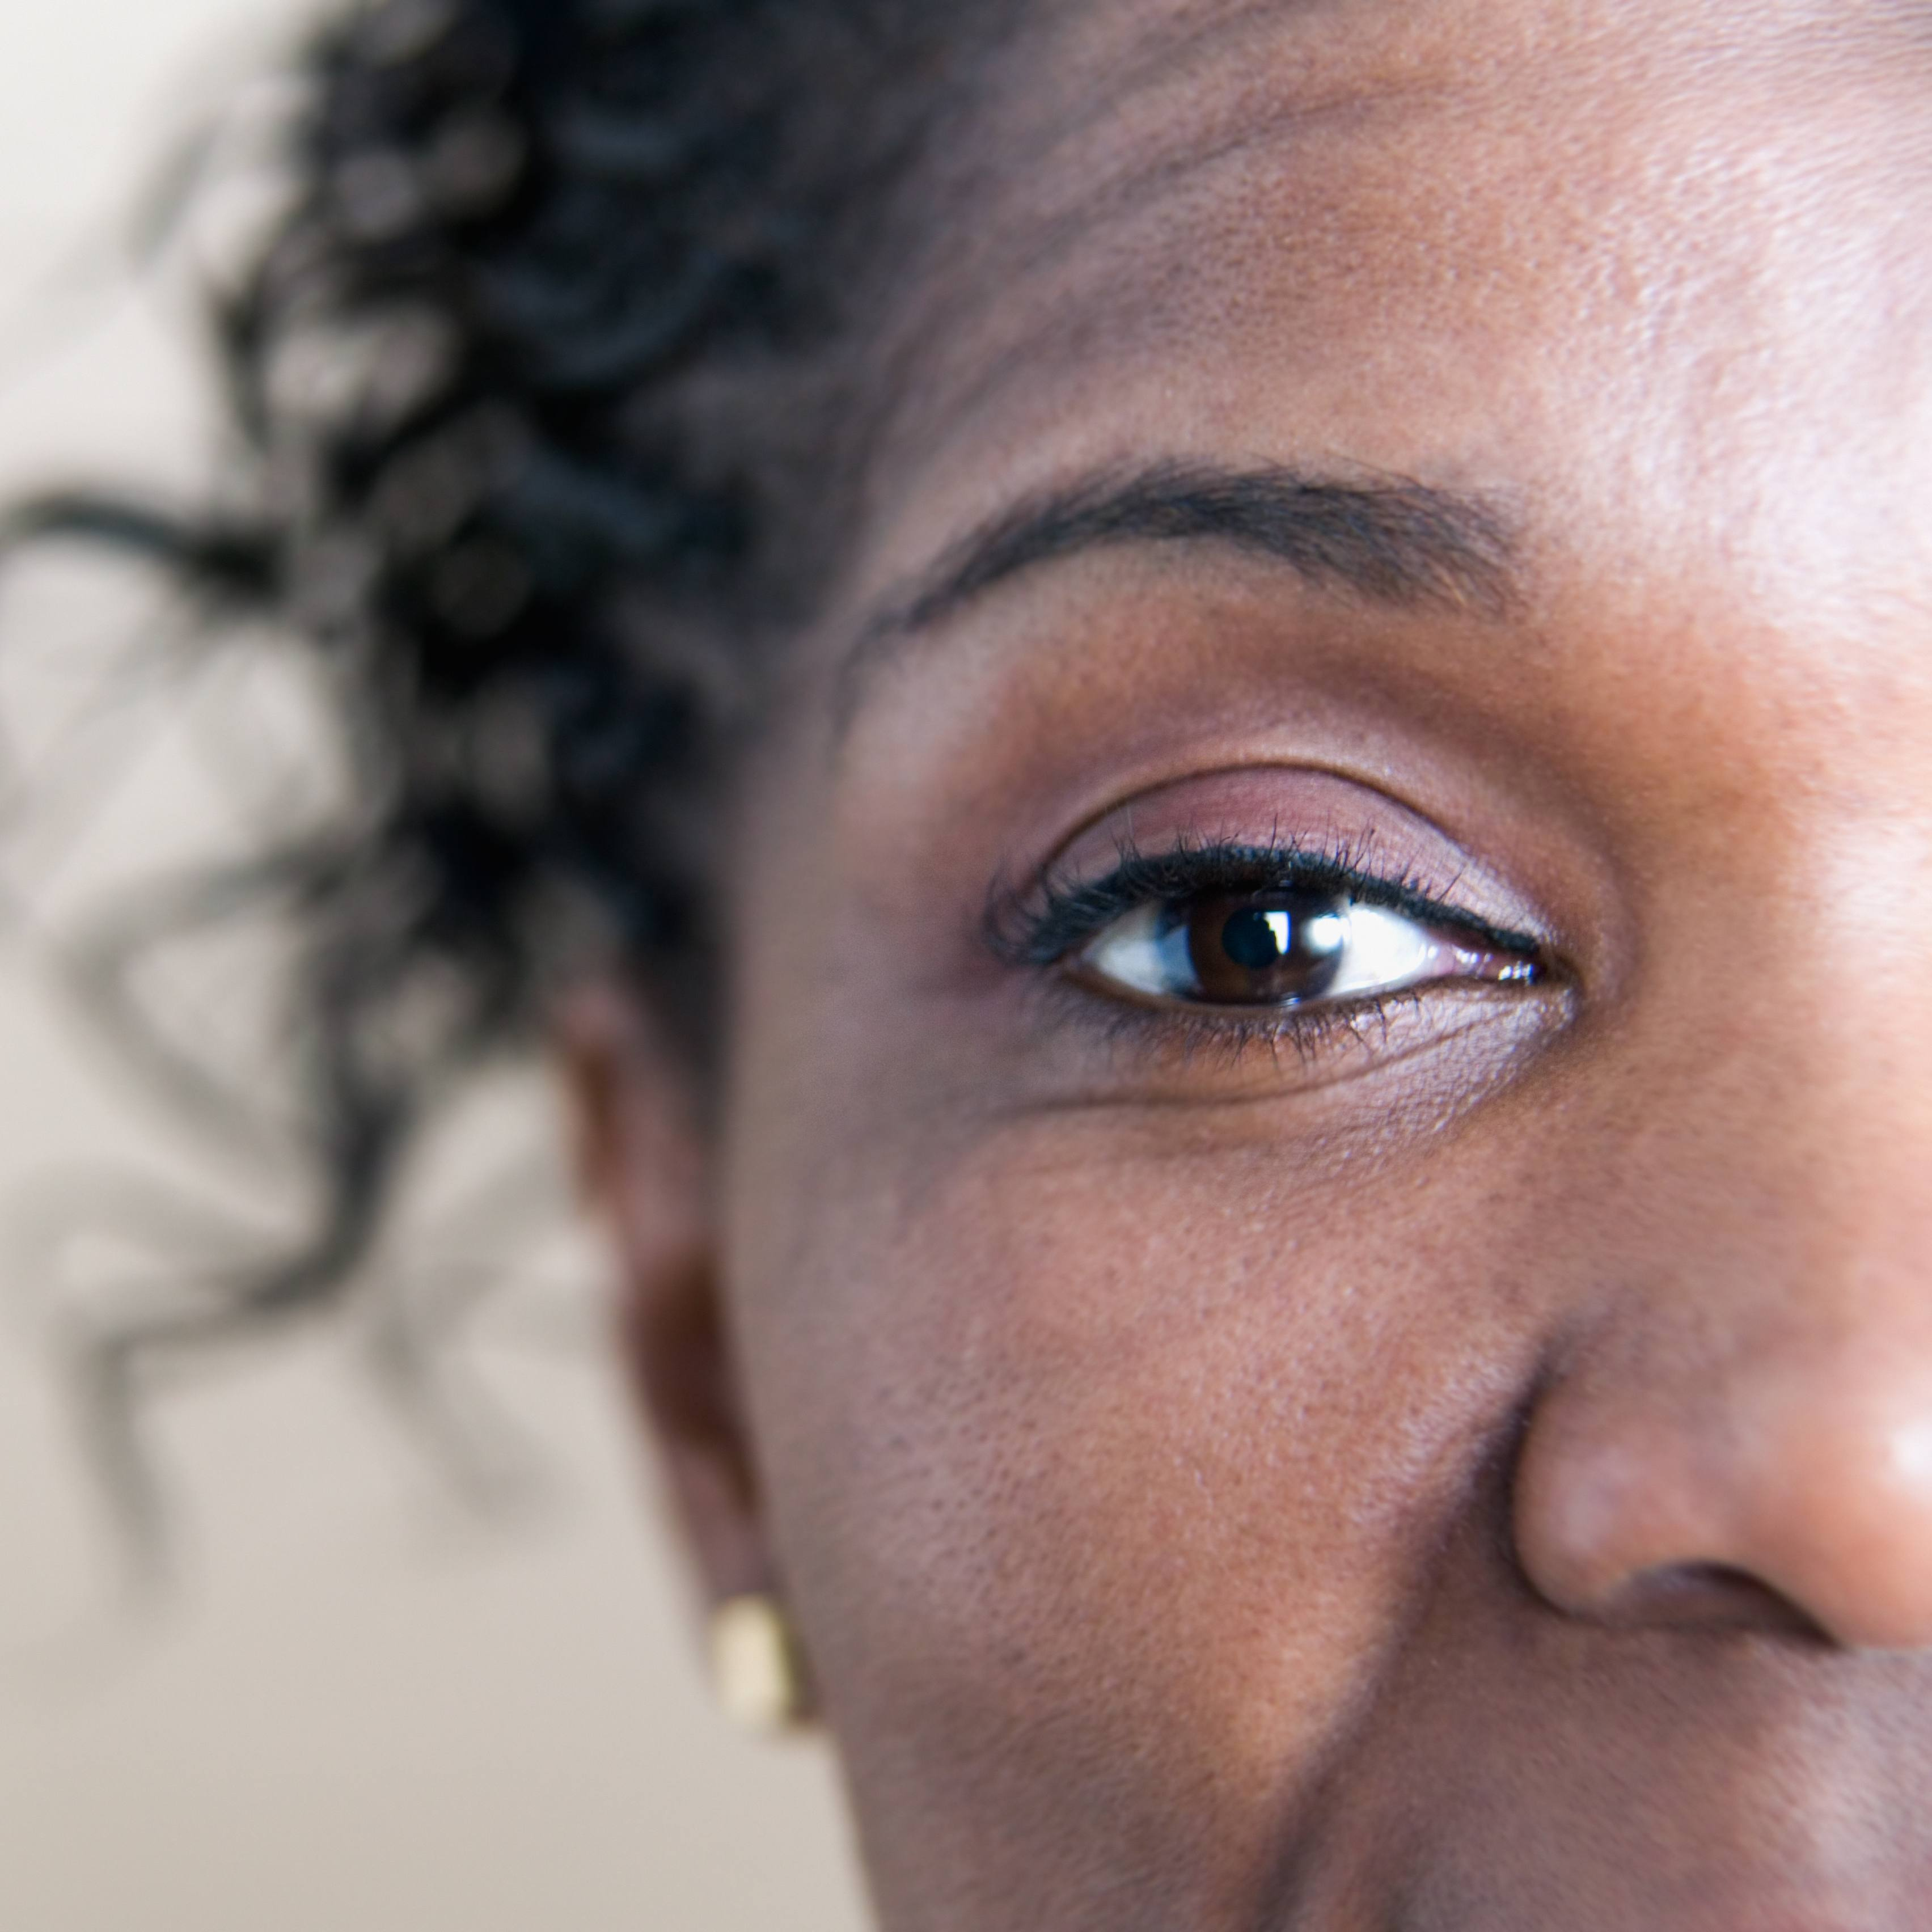 a close-up of a middle-aged woman's right eye